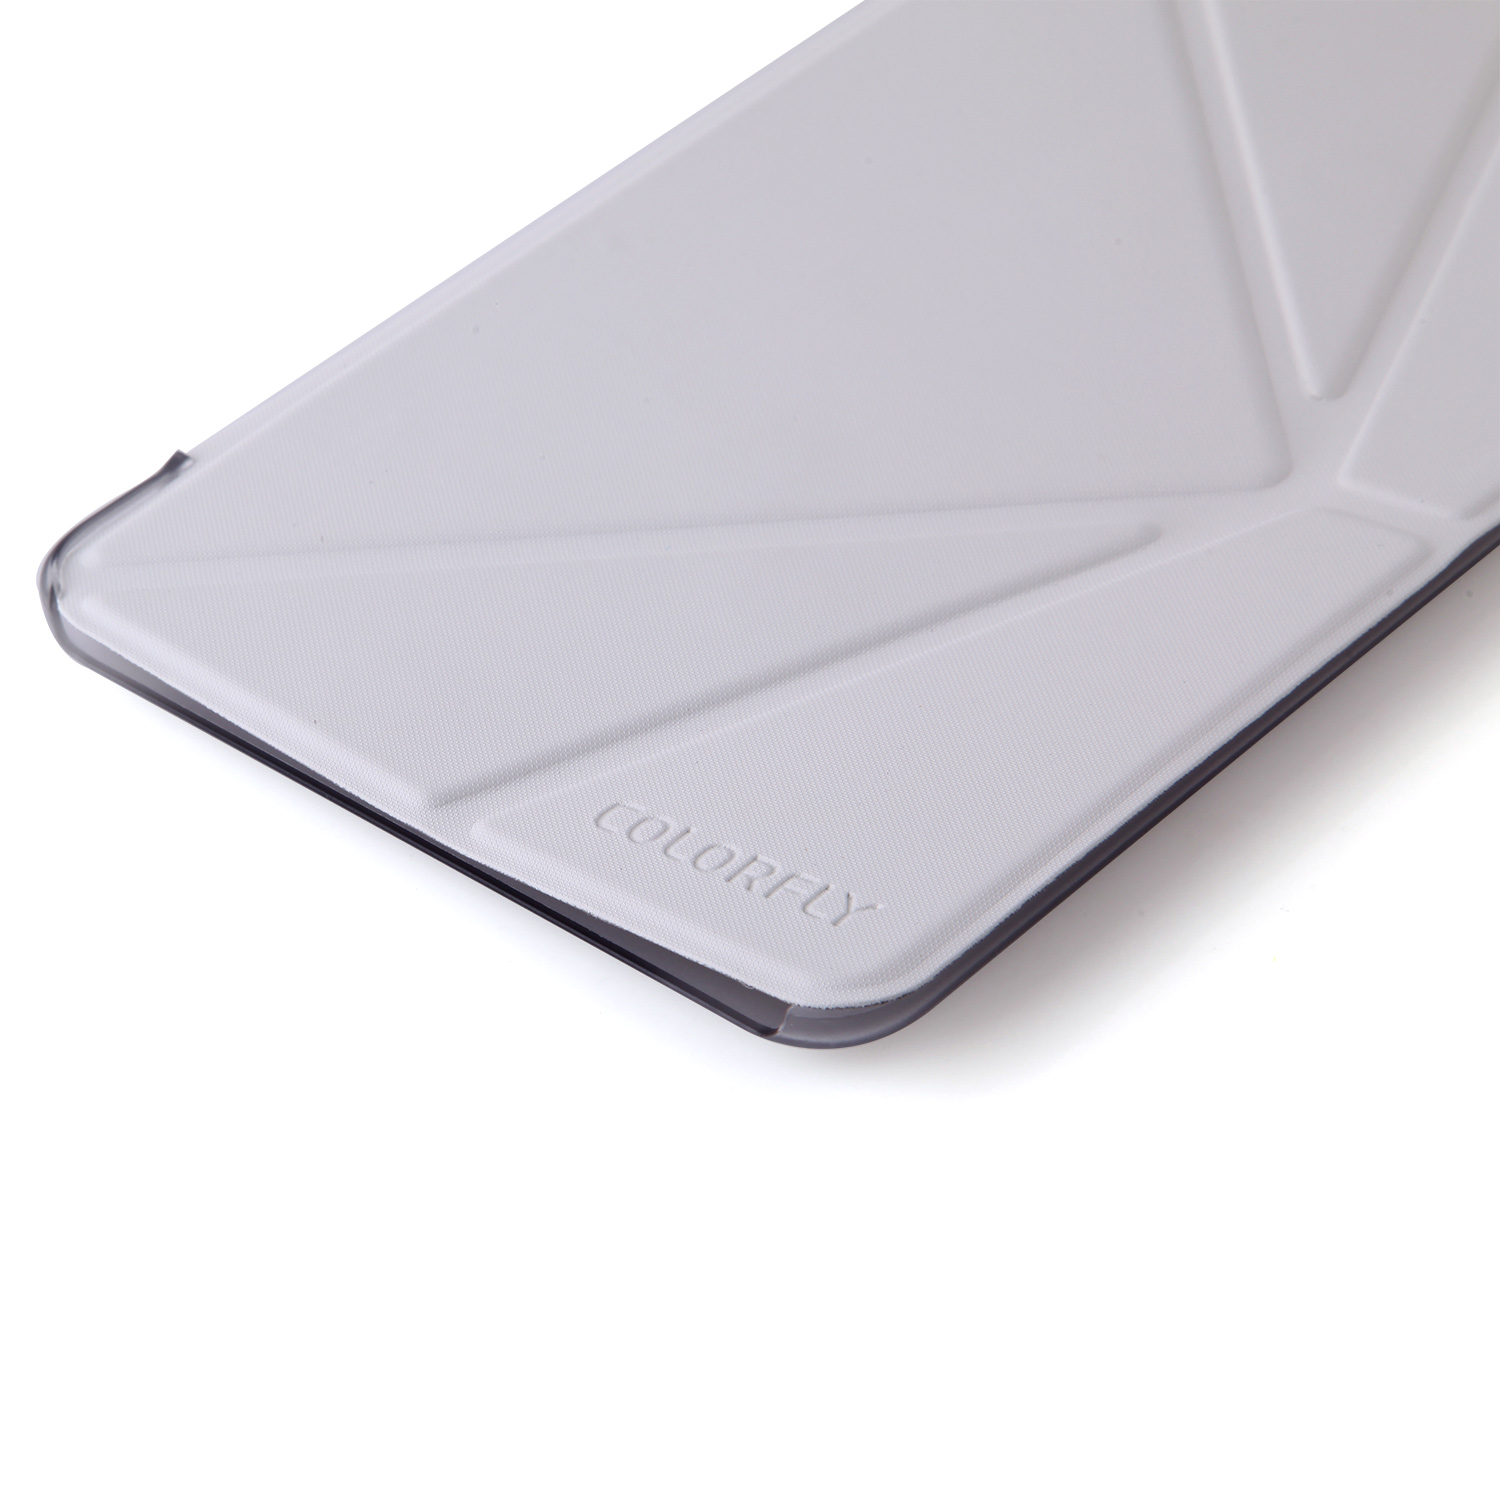 Protective PU Leather Stand Case Cover for Colorfly G808 3G Tablet PC White